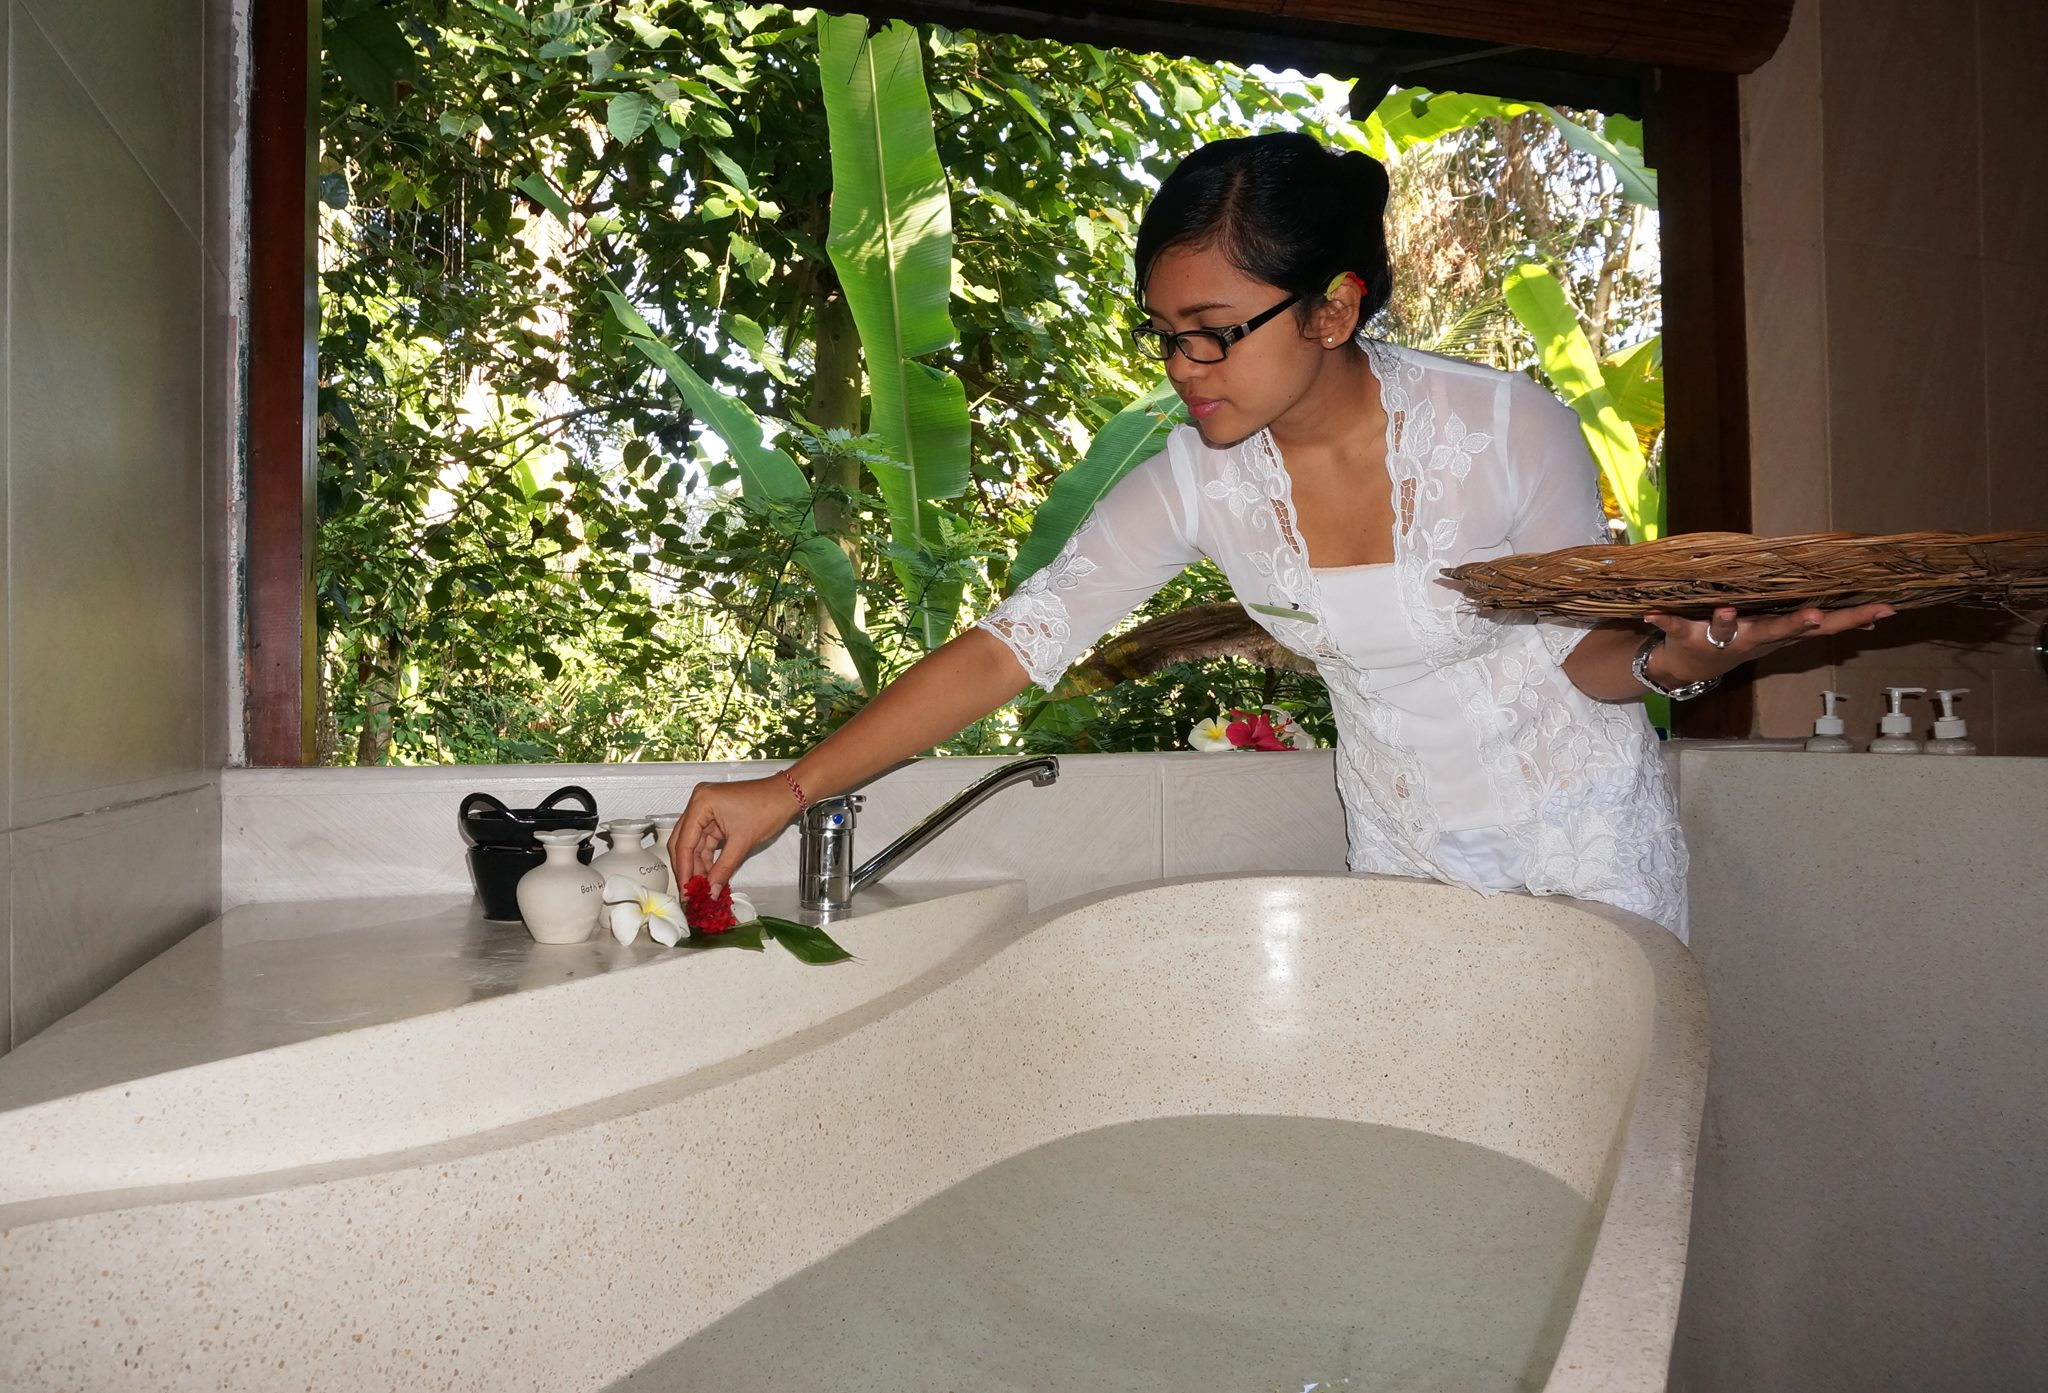 botanica-day-spa-ayurveda-center-bali-indonesia-15